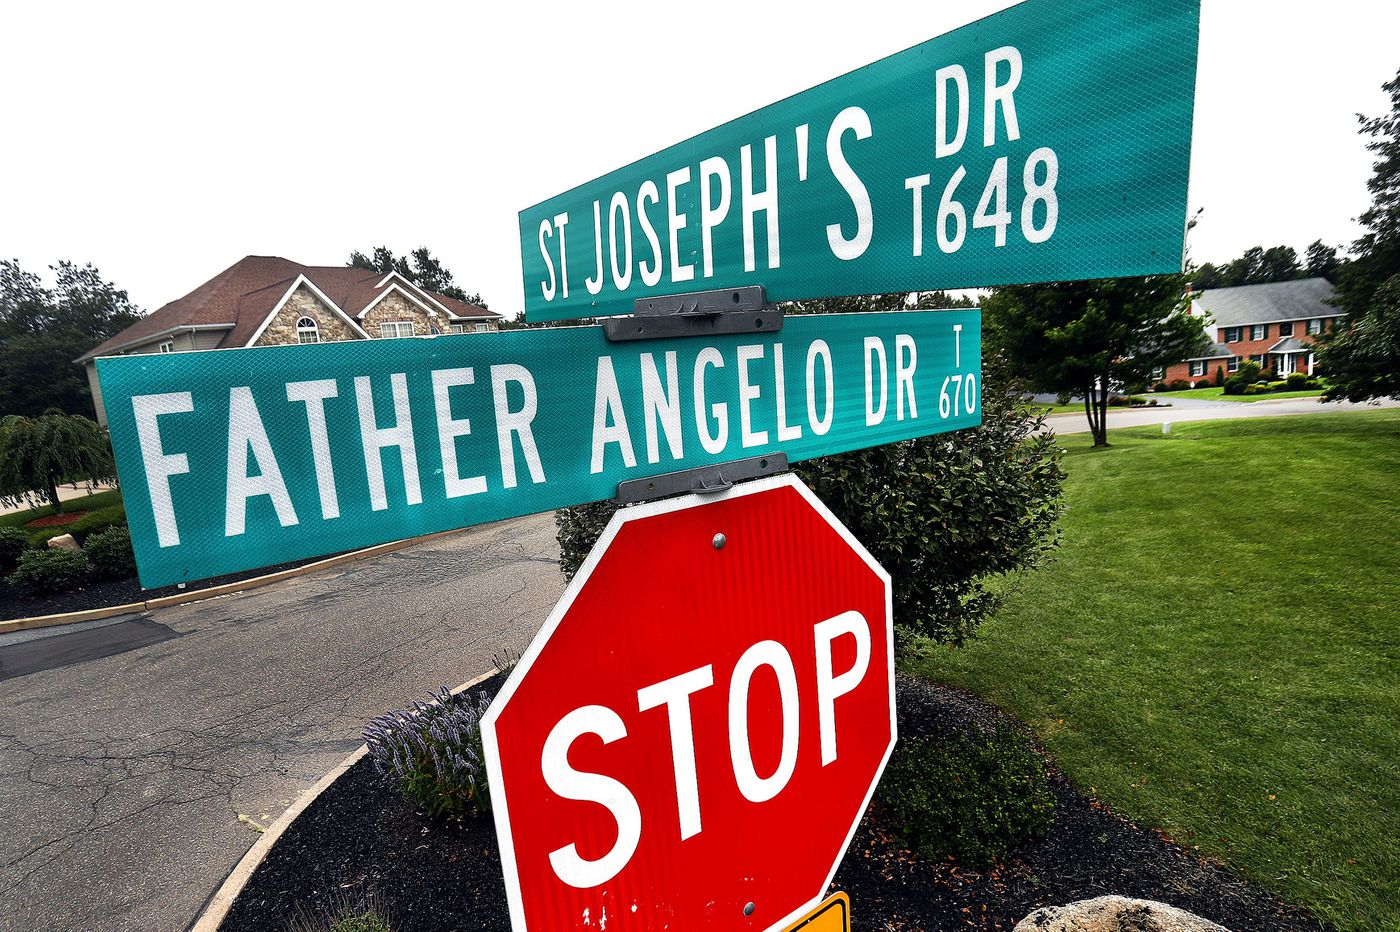 After Pa. Catholic priest abuse report, a town grapples with a street name